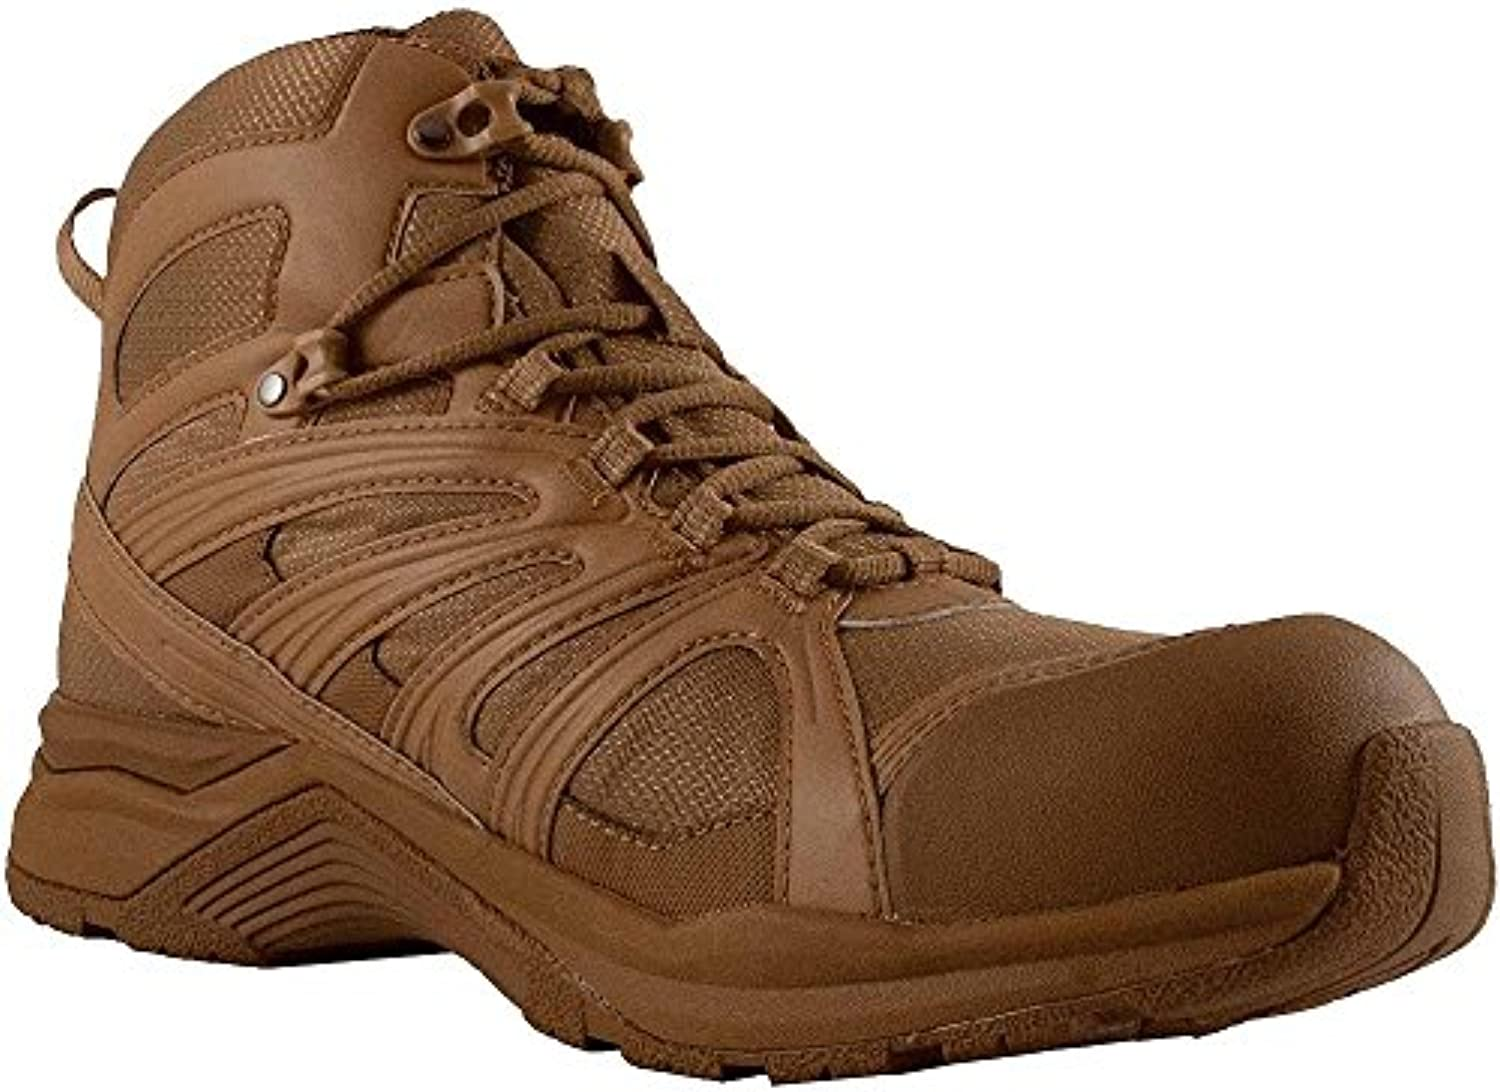 ALTAMA 353203 Aboottabad Trail - Mid WP Coyote 38 (6.0)